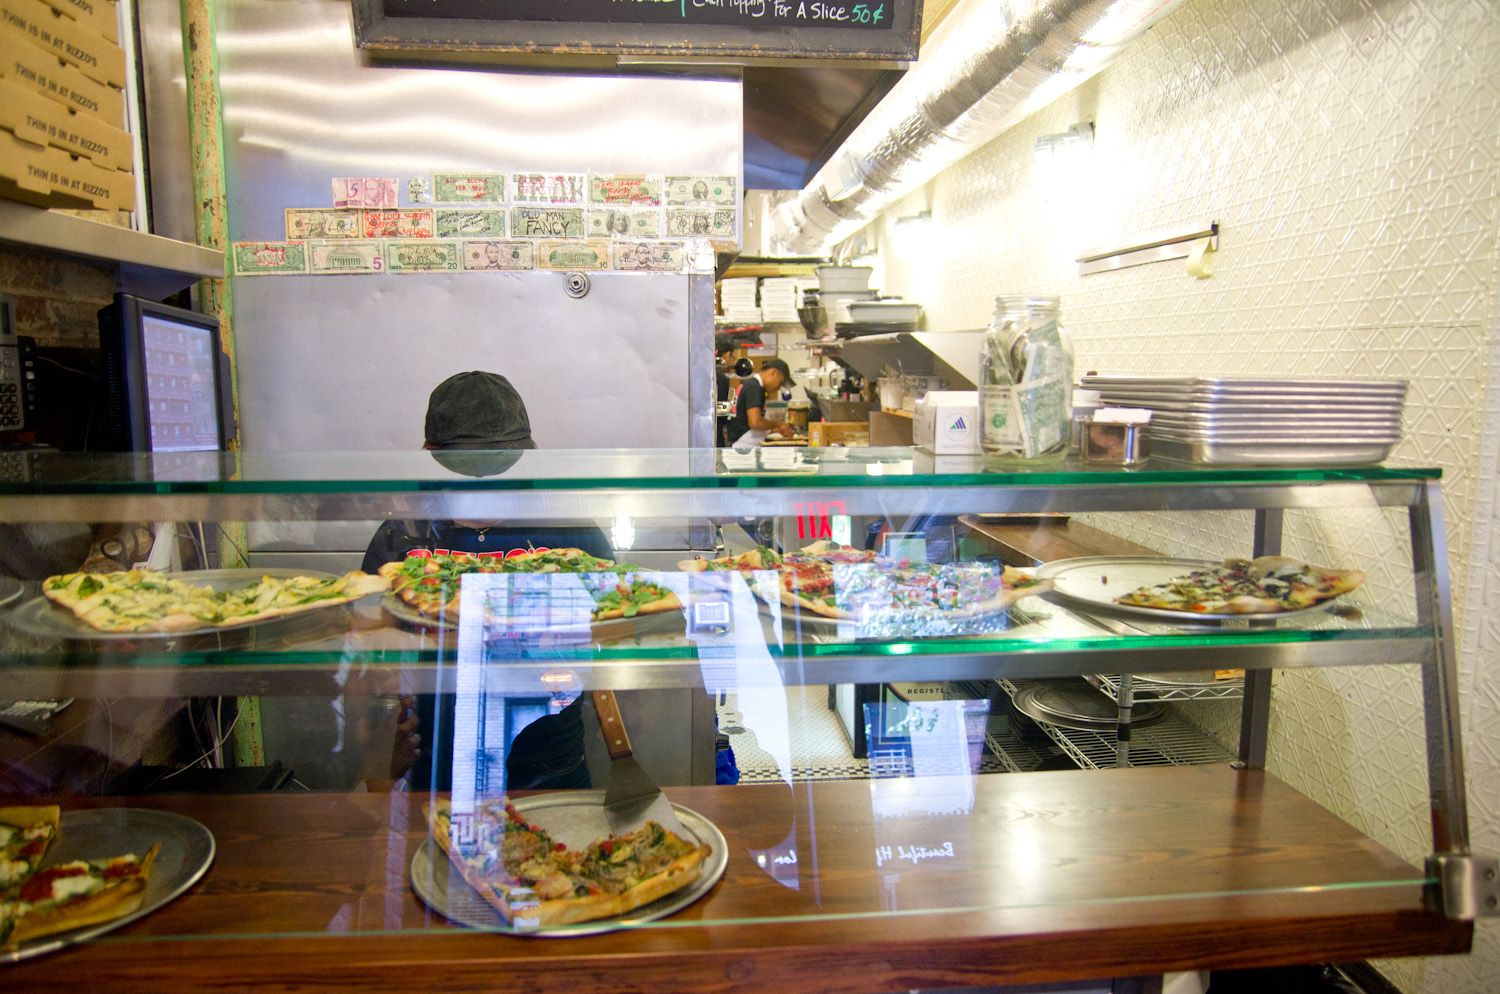 Rizzo's Thin Crust Sicilian Meets High Expectations on the Lower East Side   Slice Pizza Blog - Green olives for my hubby.